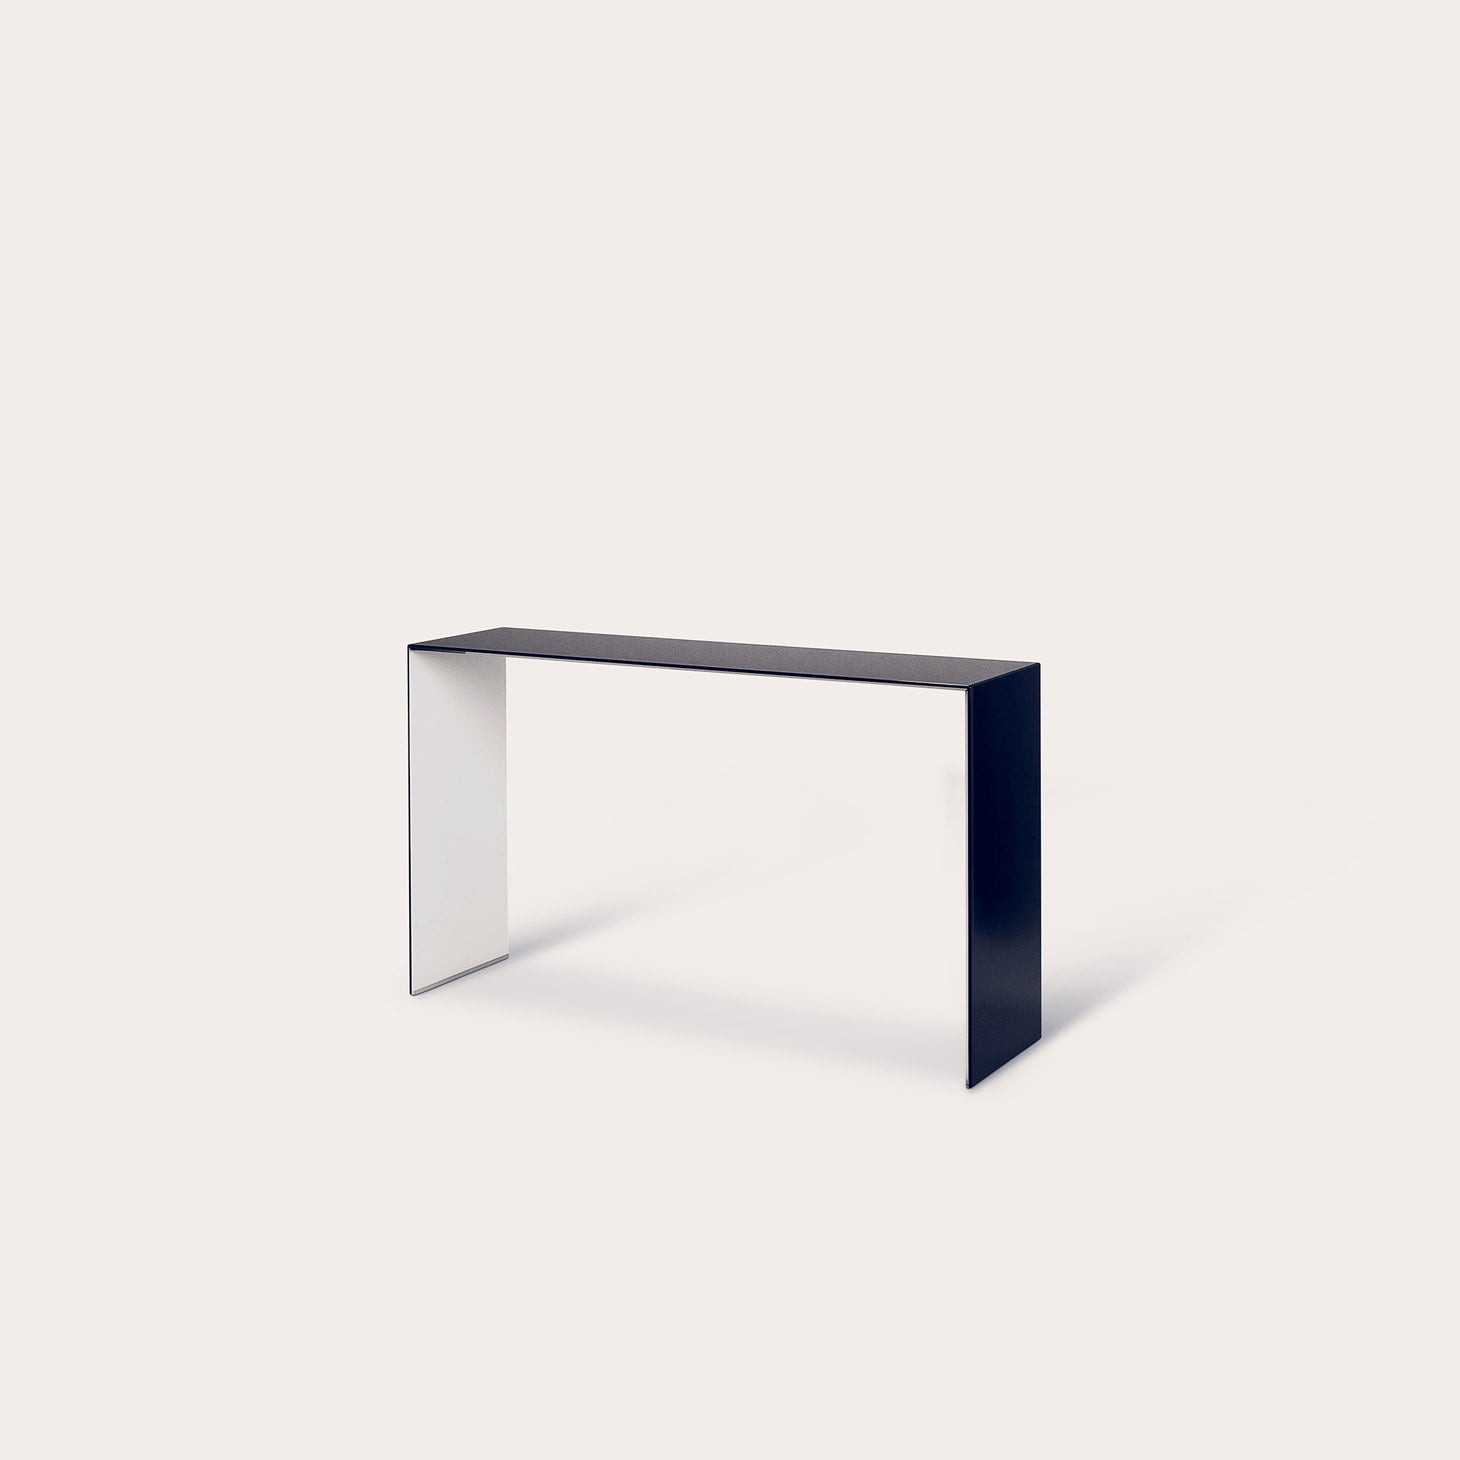 Sio2 Bridge Tables Piero Lissoni Designer Furniture Sku: 288-230-10012